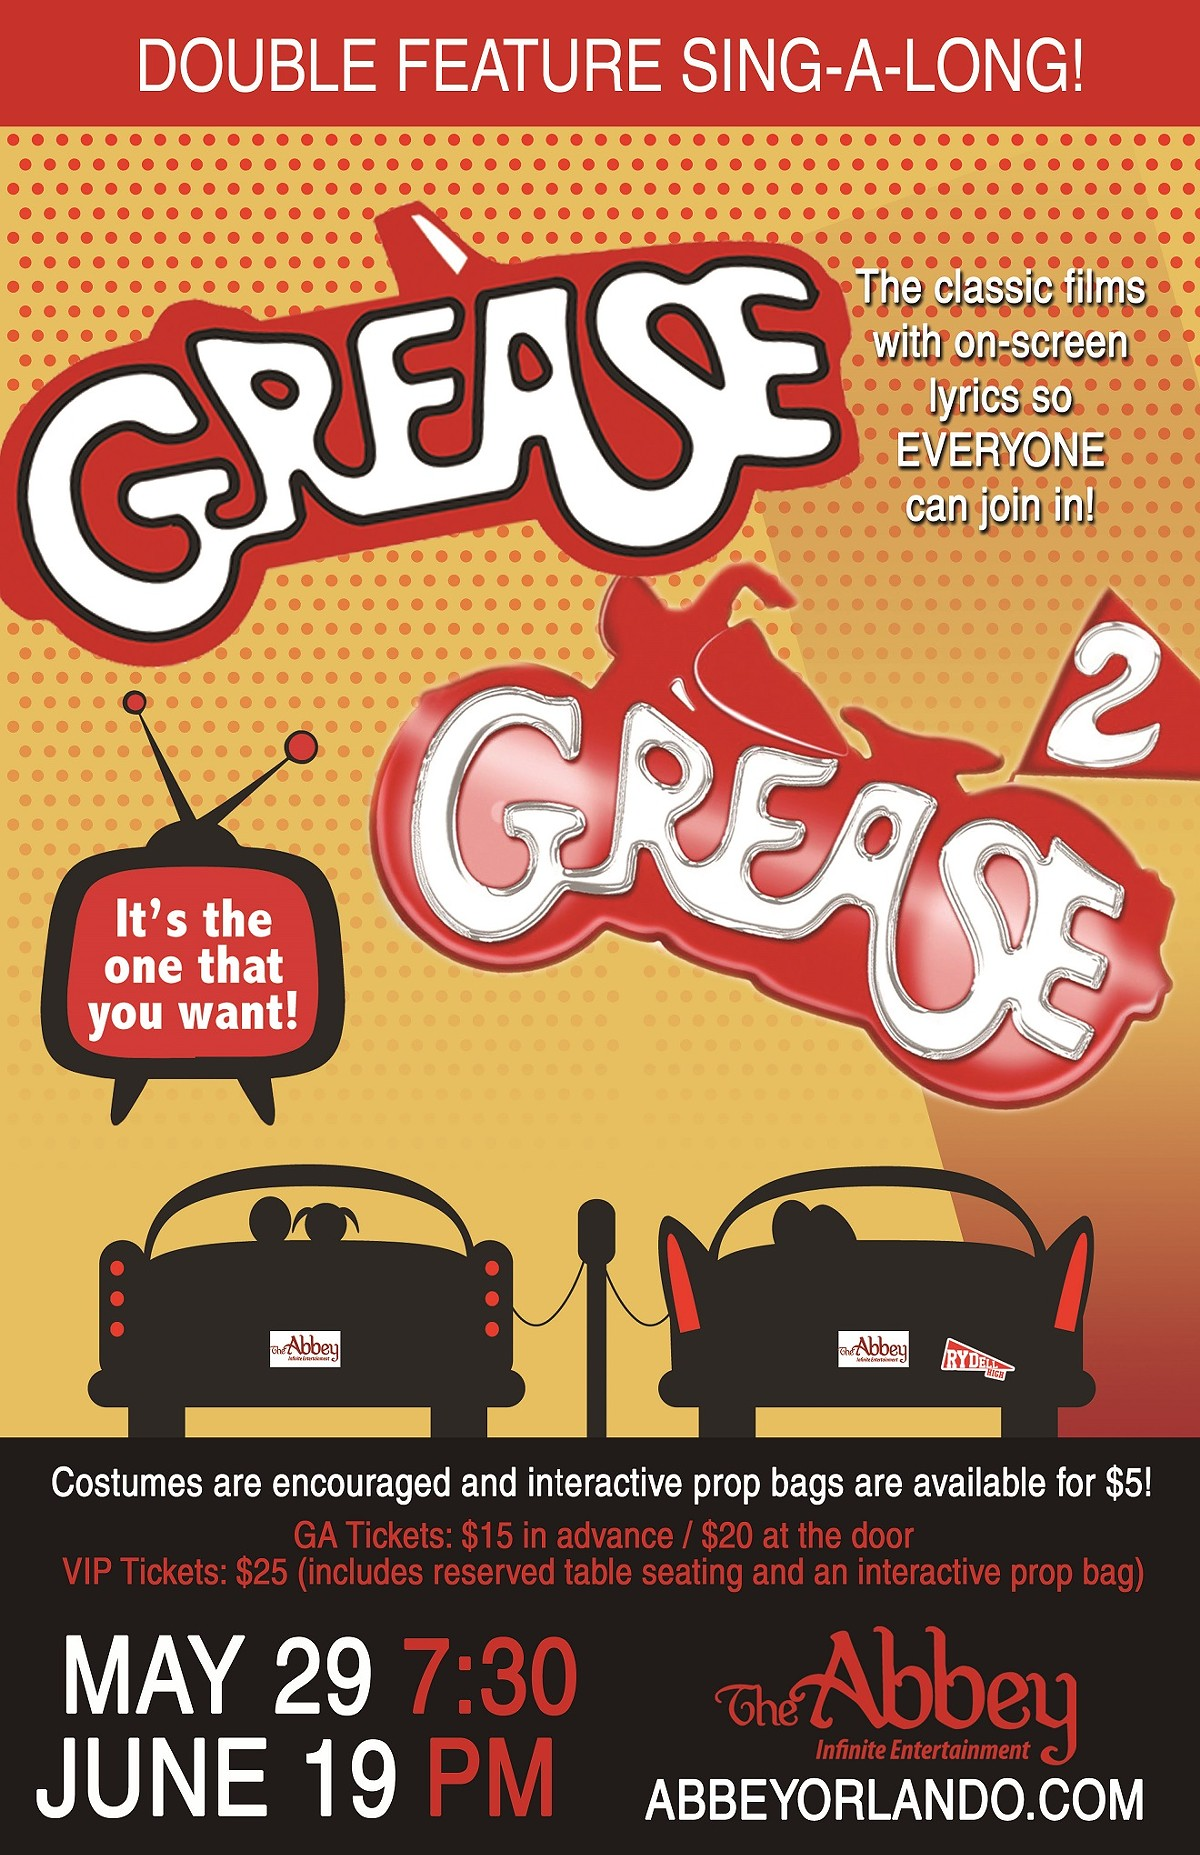 grease-11x17-small.jpg